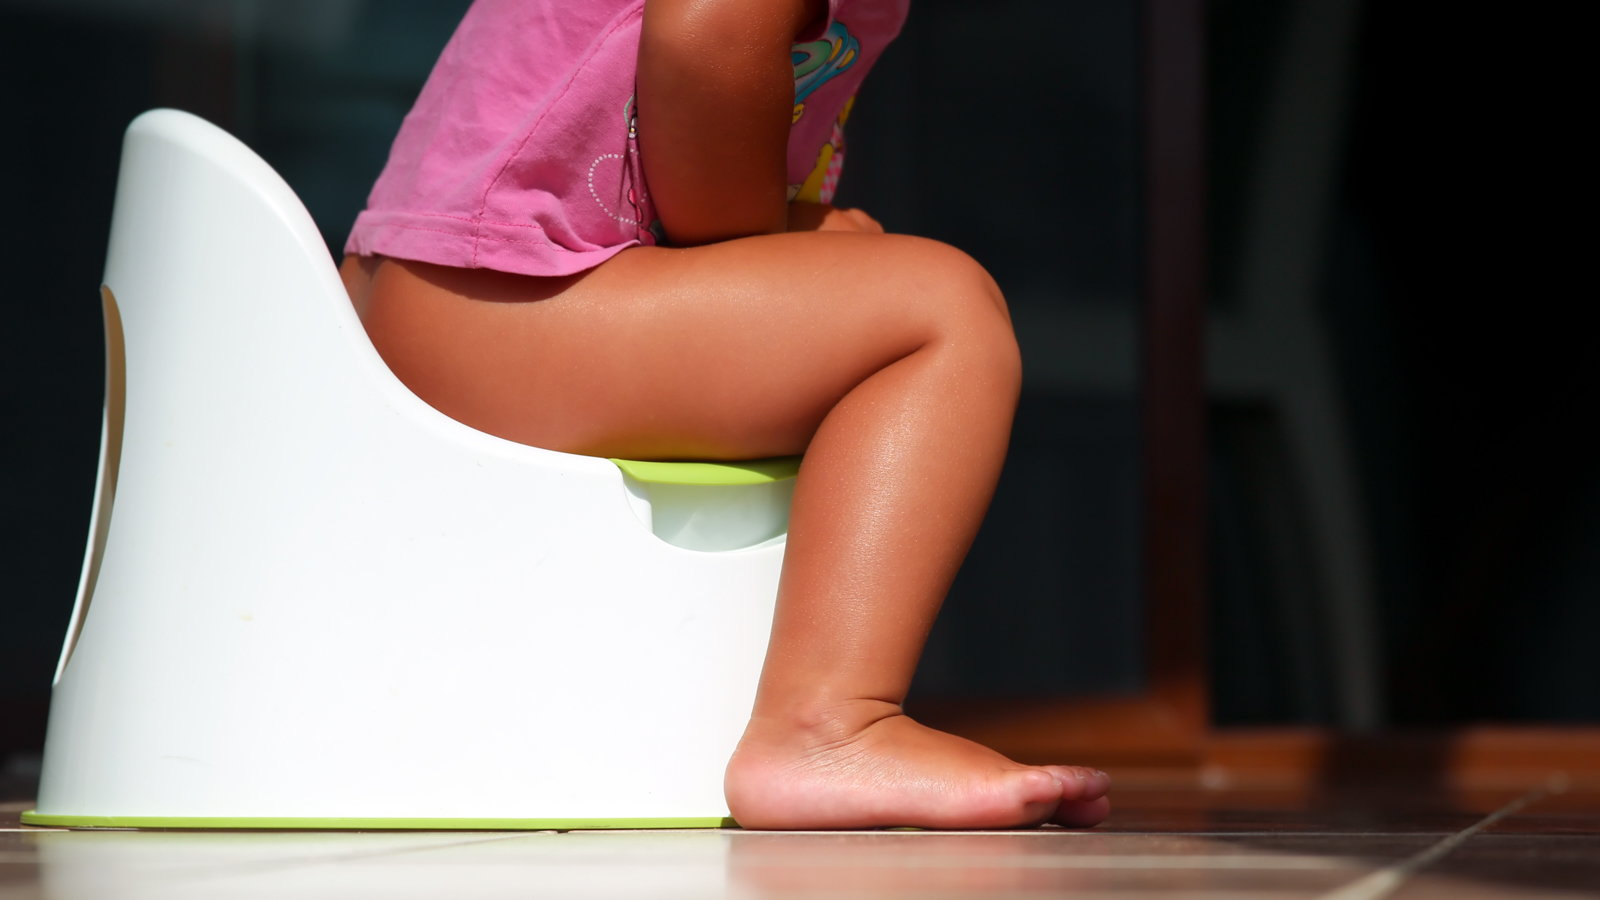 girl sitting on potty seat